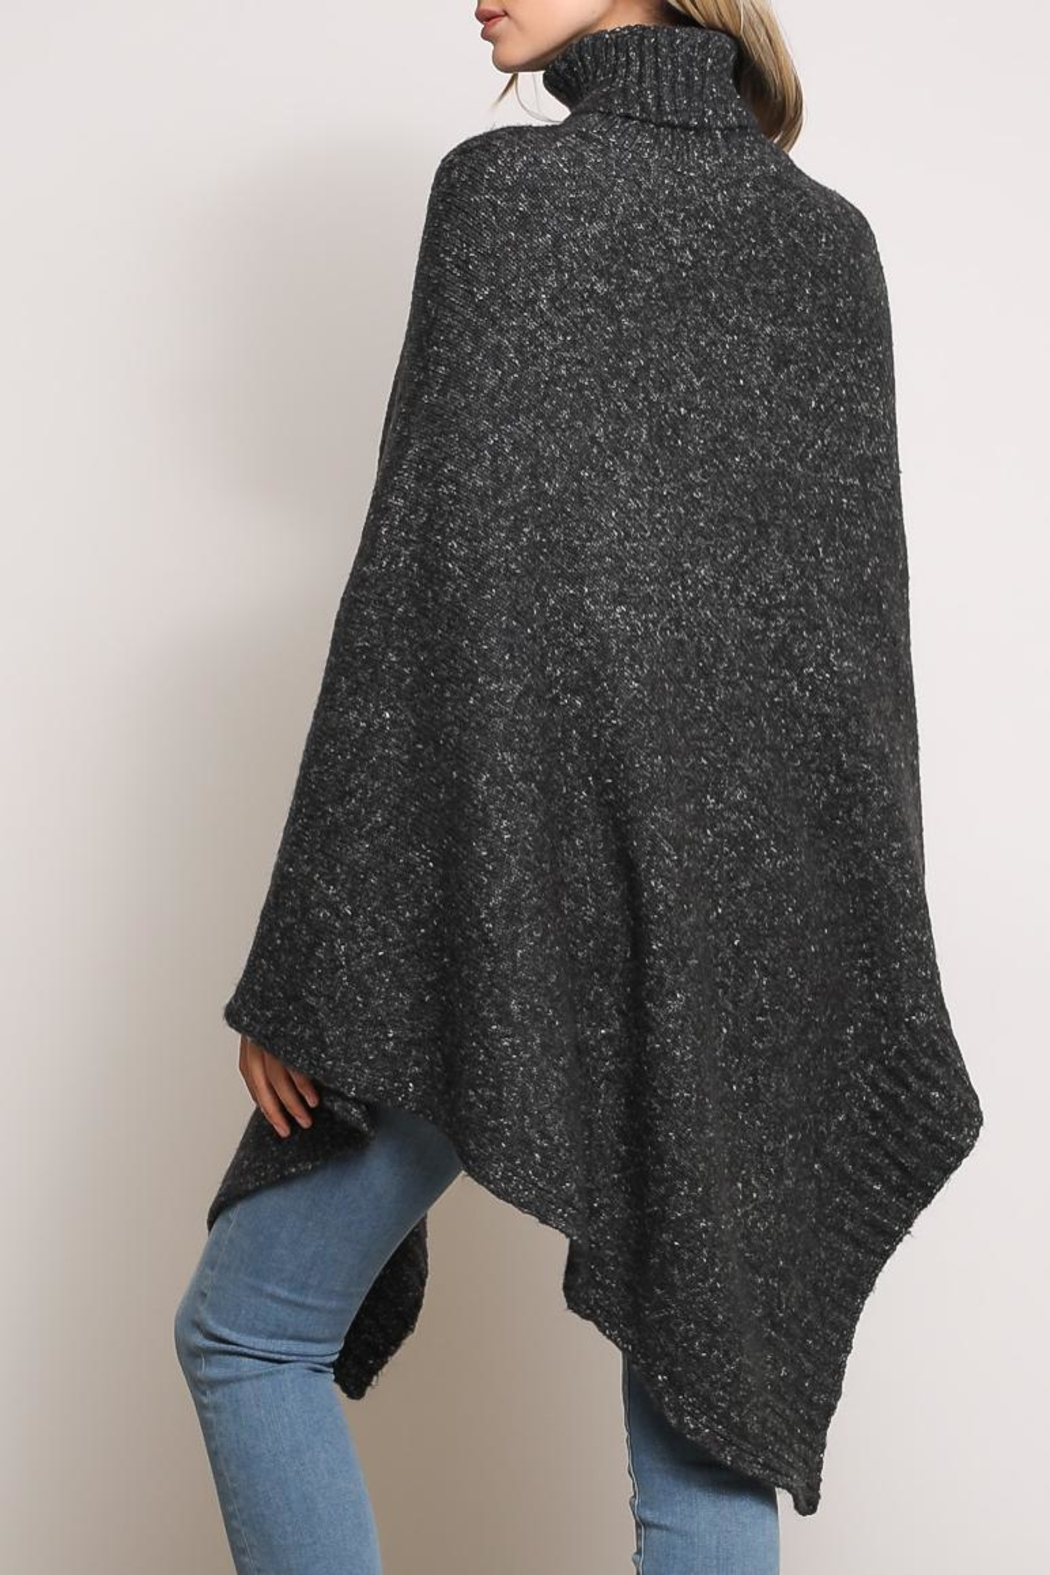 Mustard Seed Turtleneck Poncho Sweater - Side Cropped Image